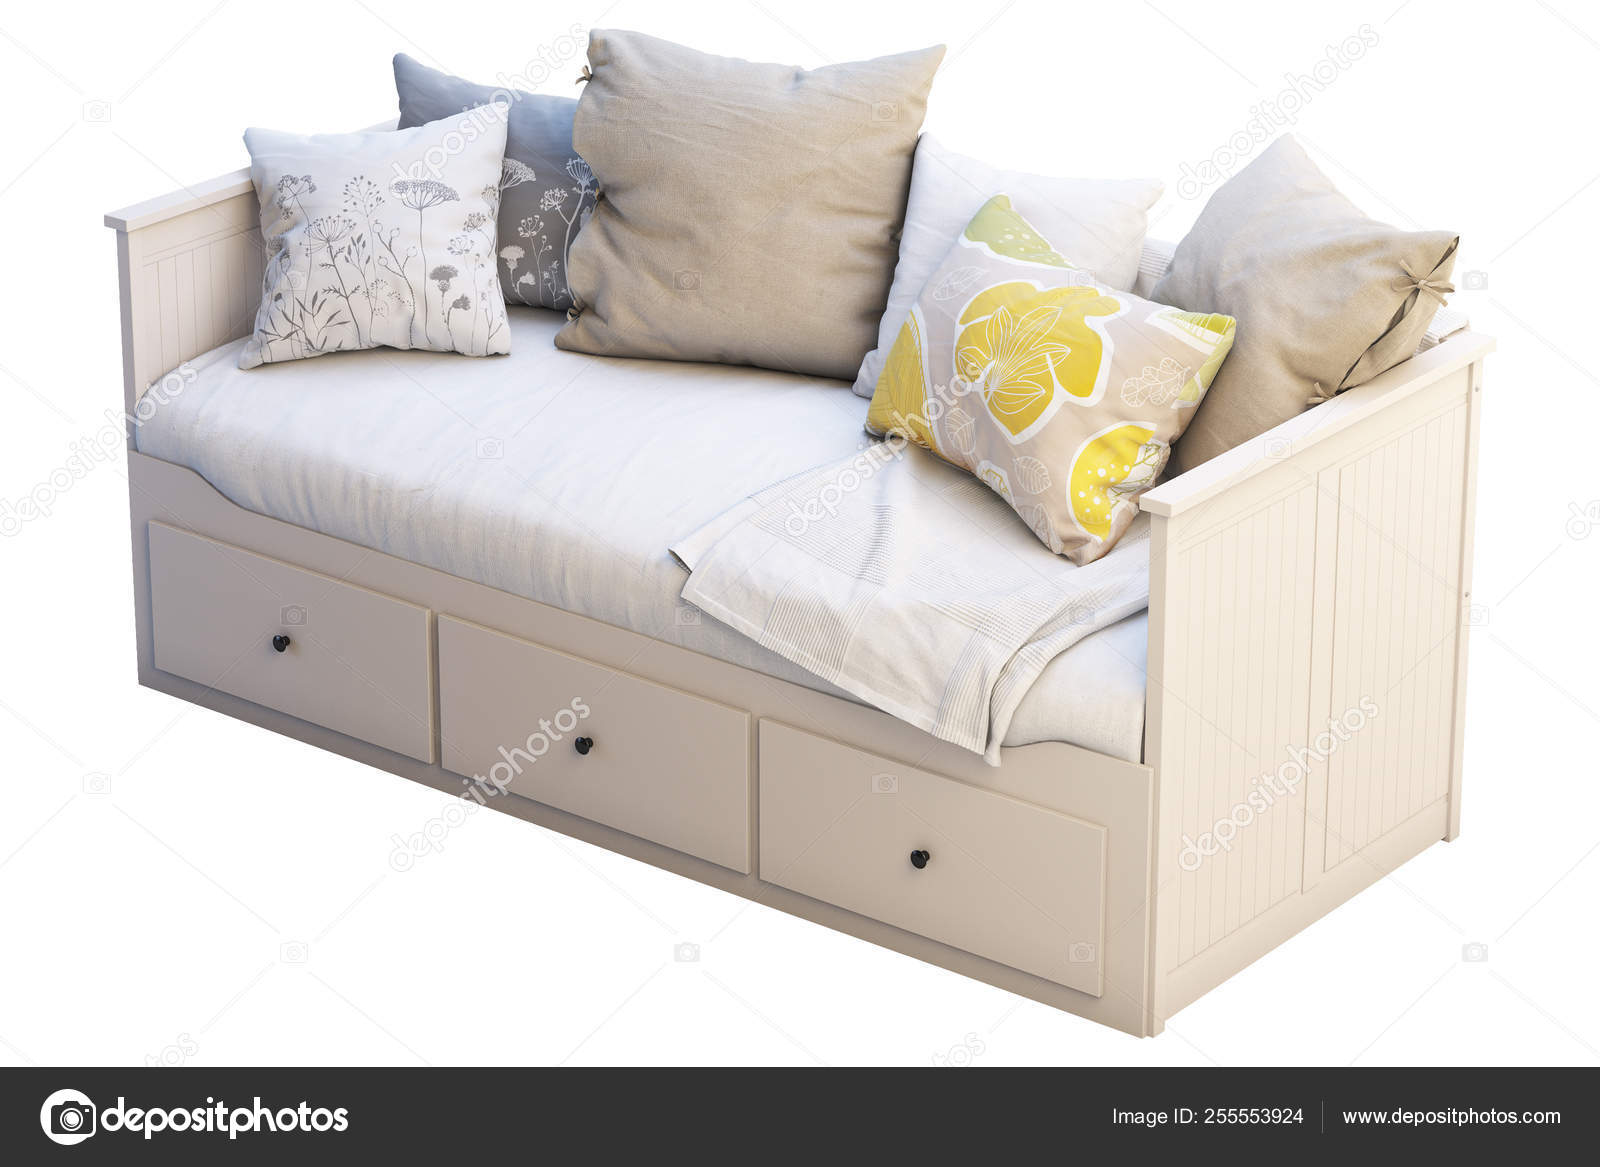 Scandinavian Folding Double Bed With Pillows And Plaid 3d Render - Klappbett Sofa